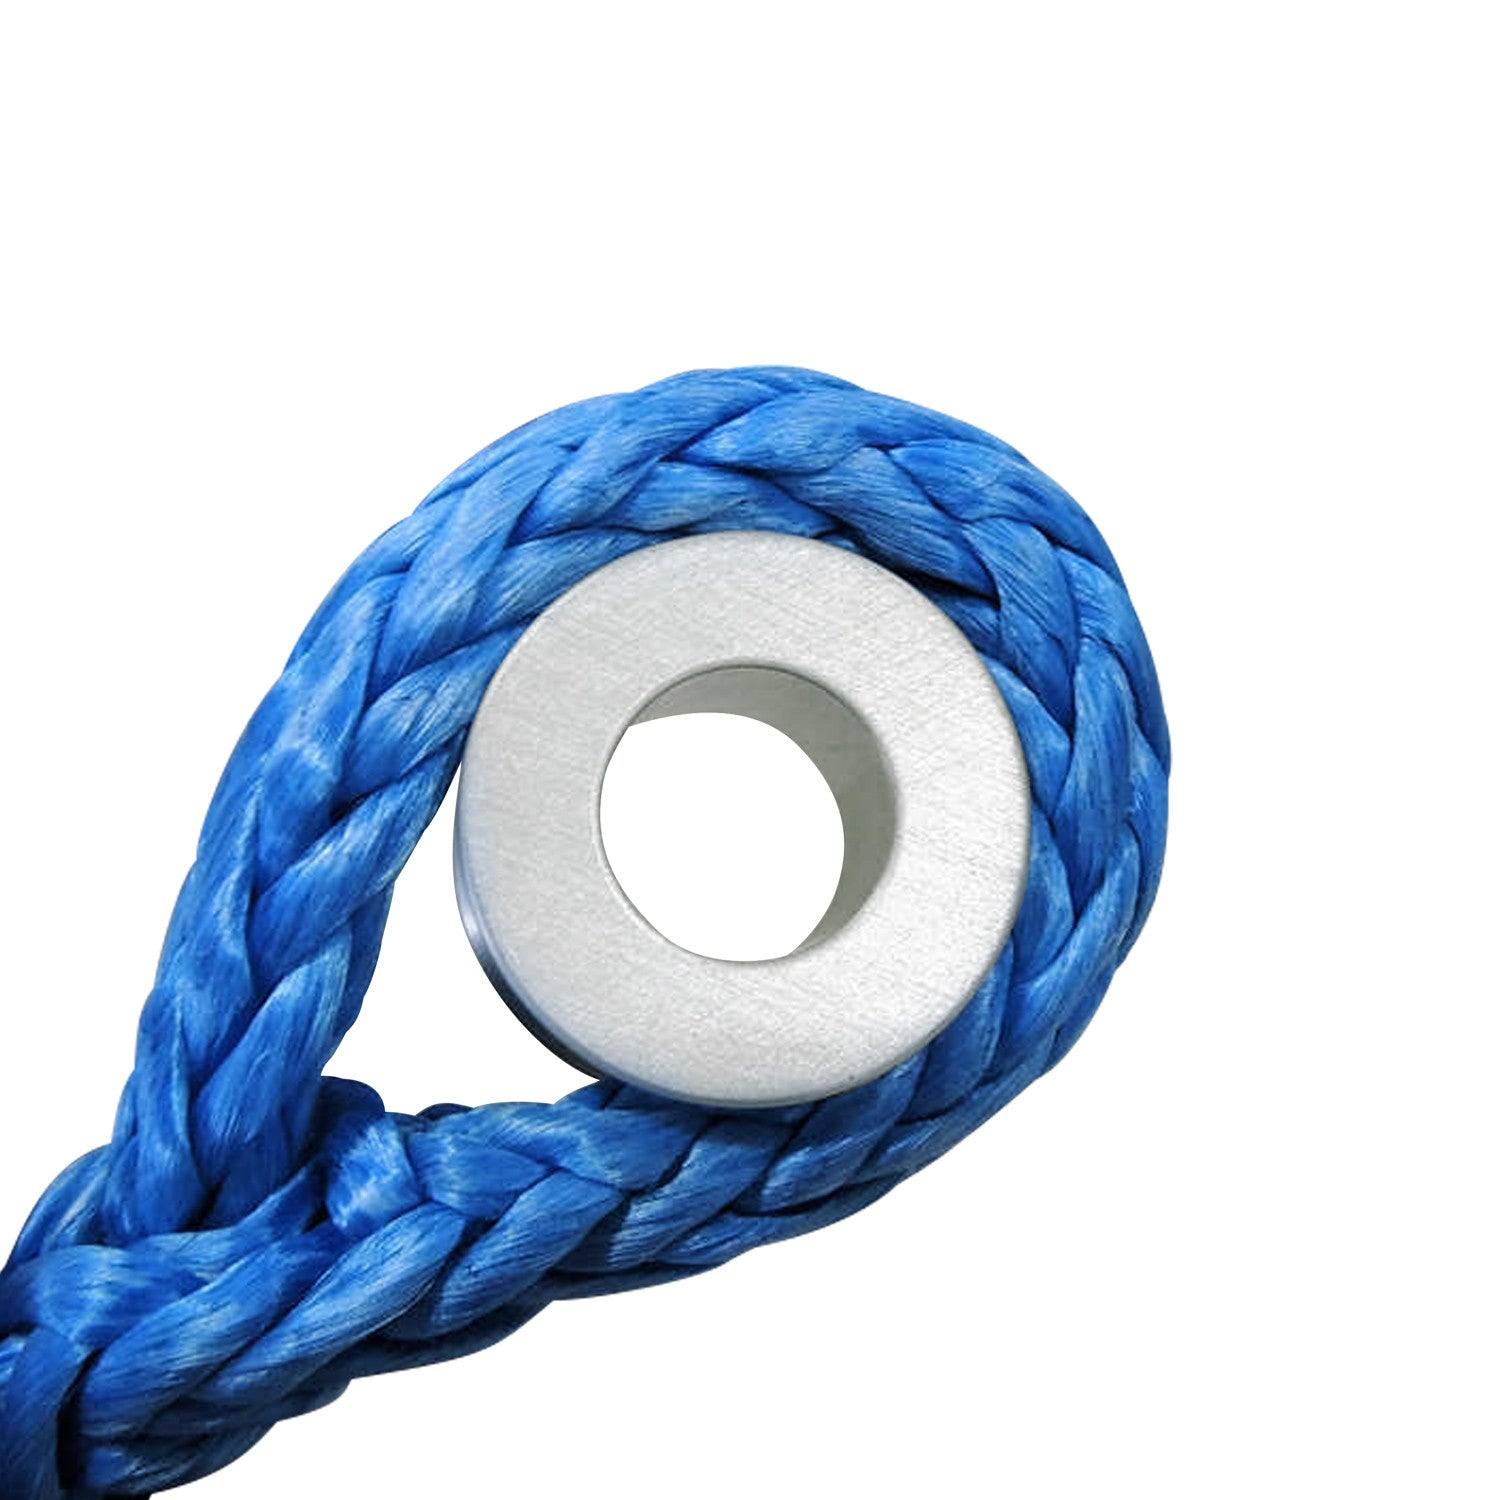 Factor 55 - Synthetic Rope Spools